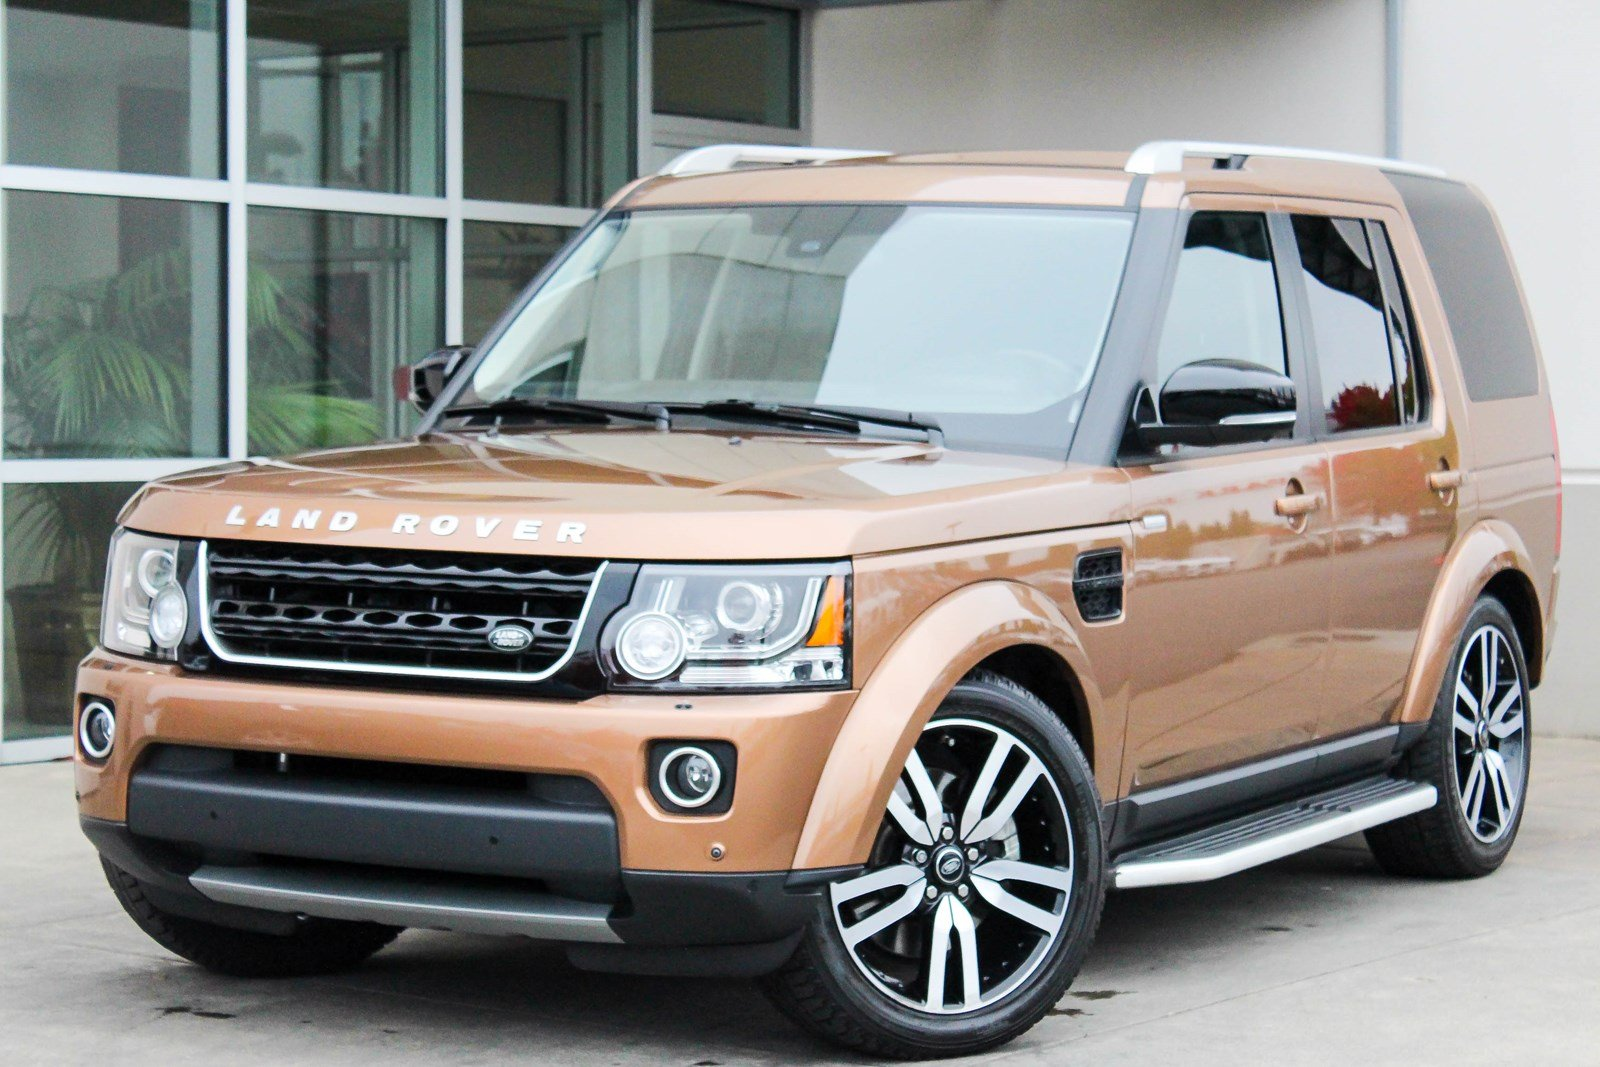 Land Rover Bellevue >> Certified Pre-Owned 2016 Land Rover LR4 HSE LUX Landmark Edition Sport Utility in Bellevue #8309 ...